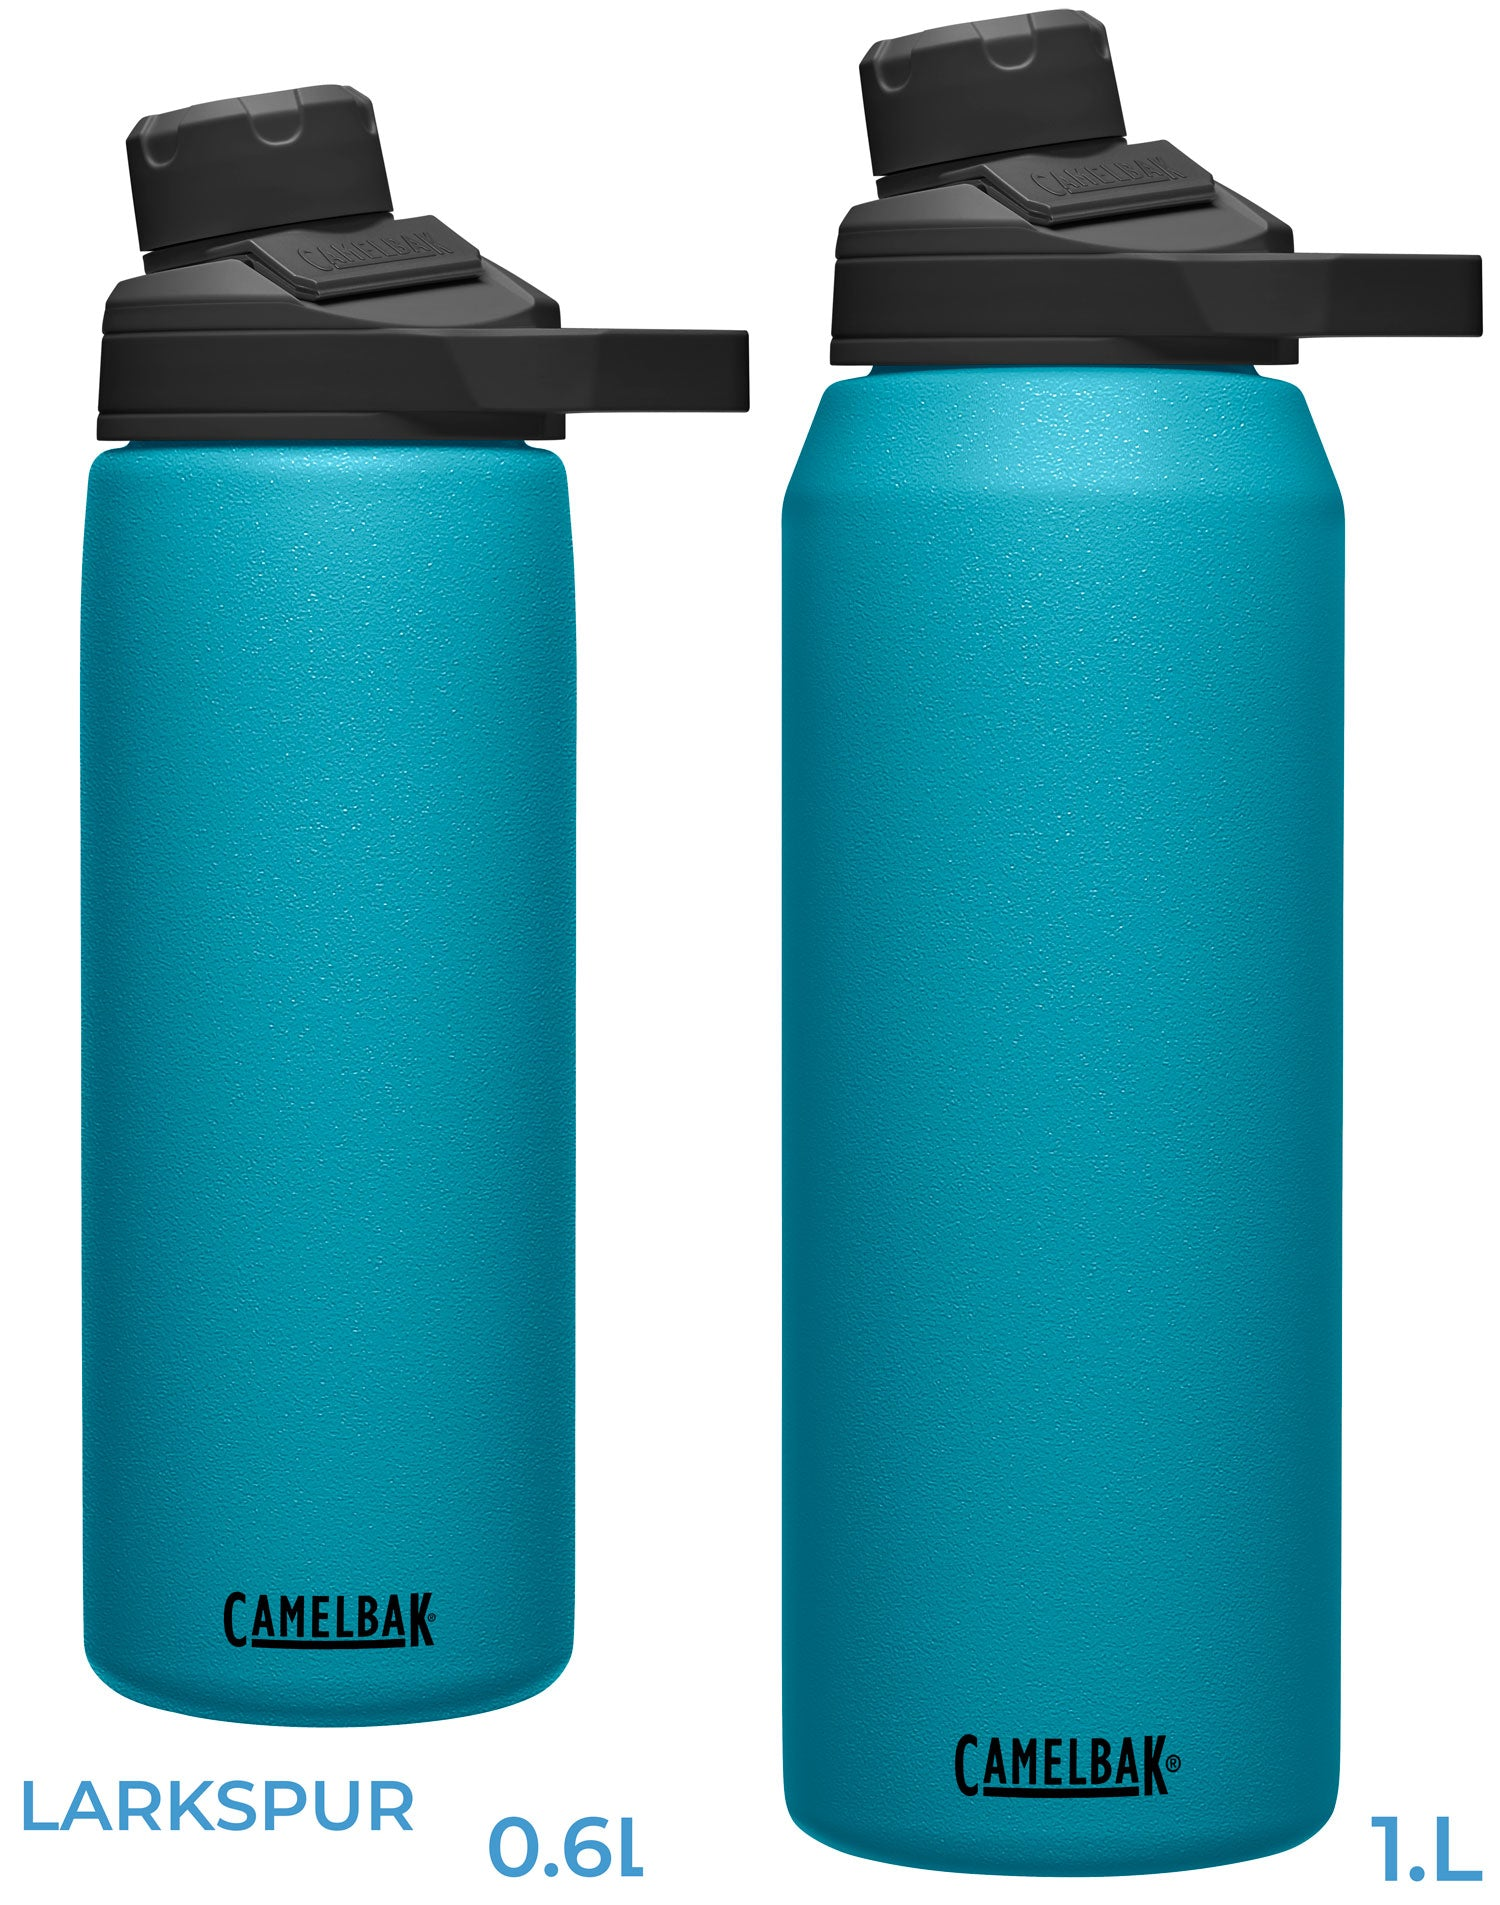 Larkspur CamelBak Chute Vacuum Insulated Bottle